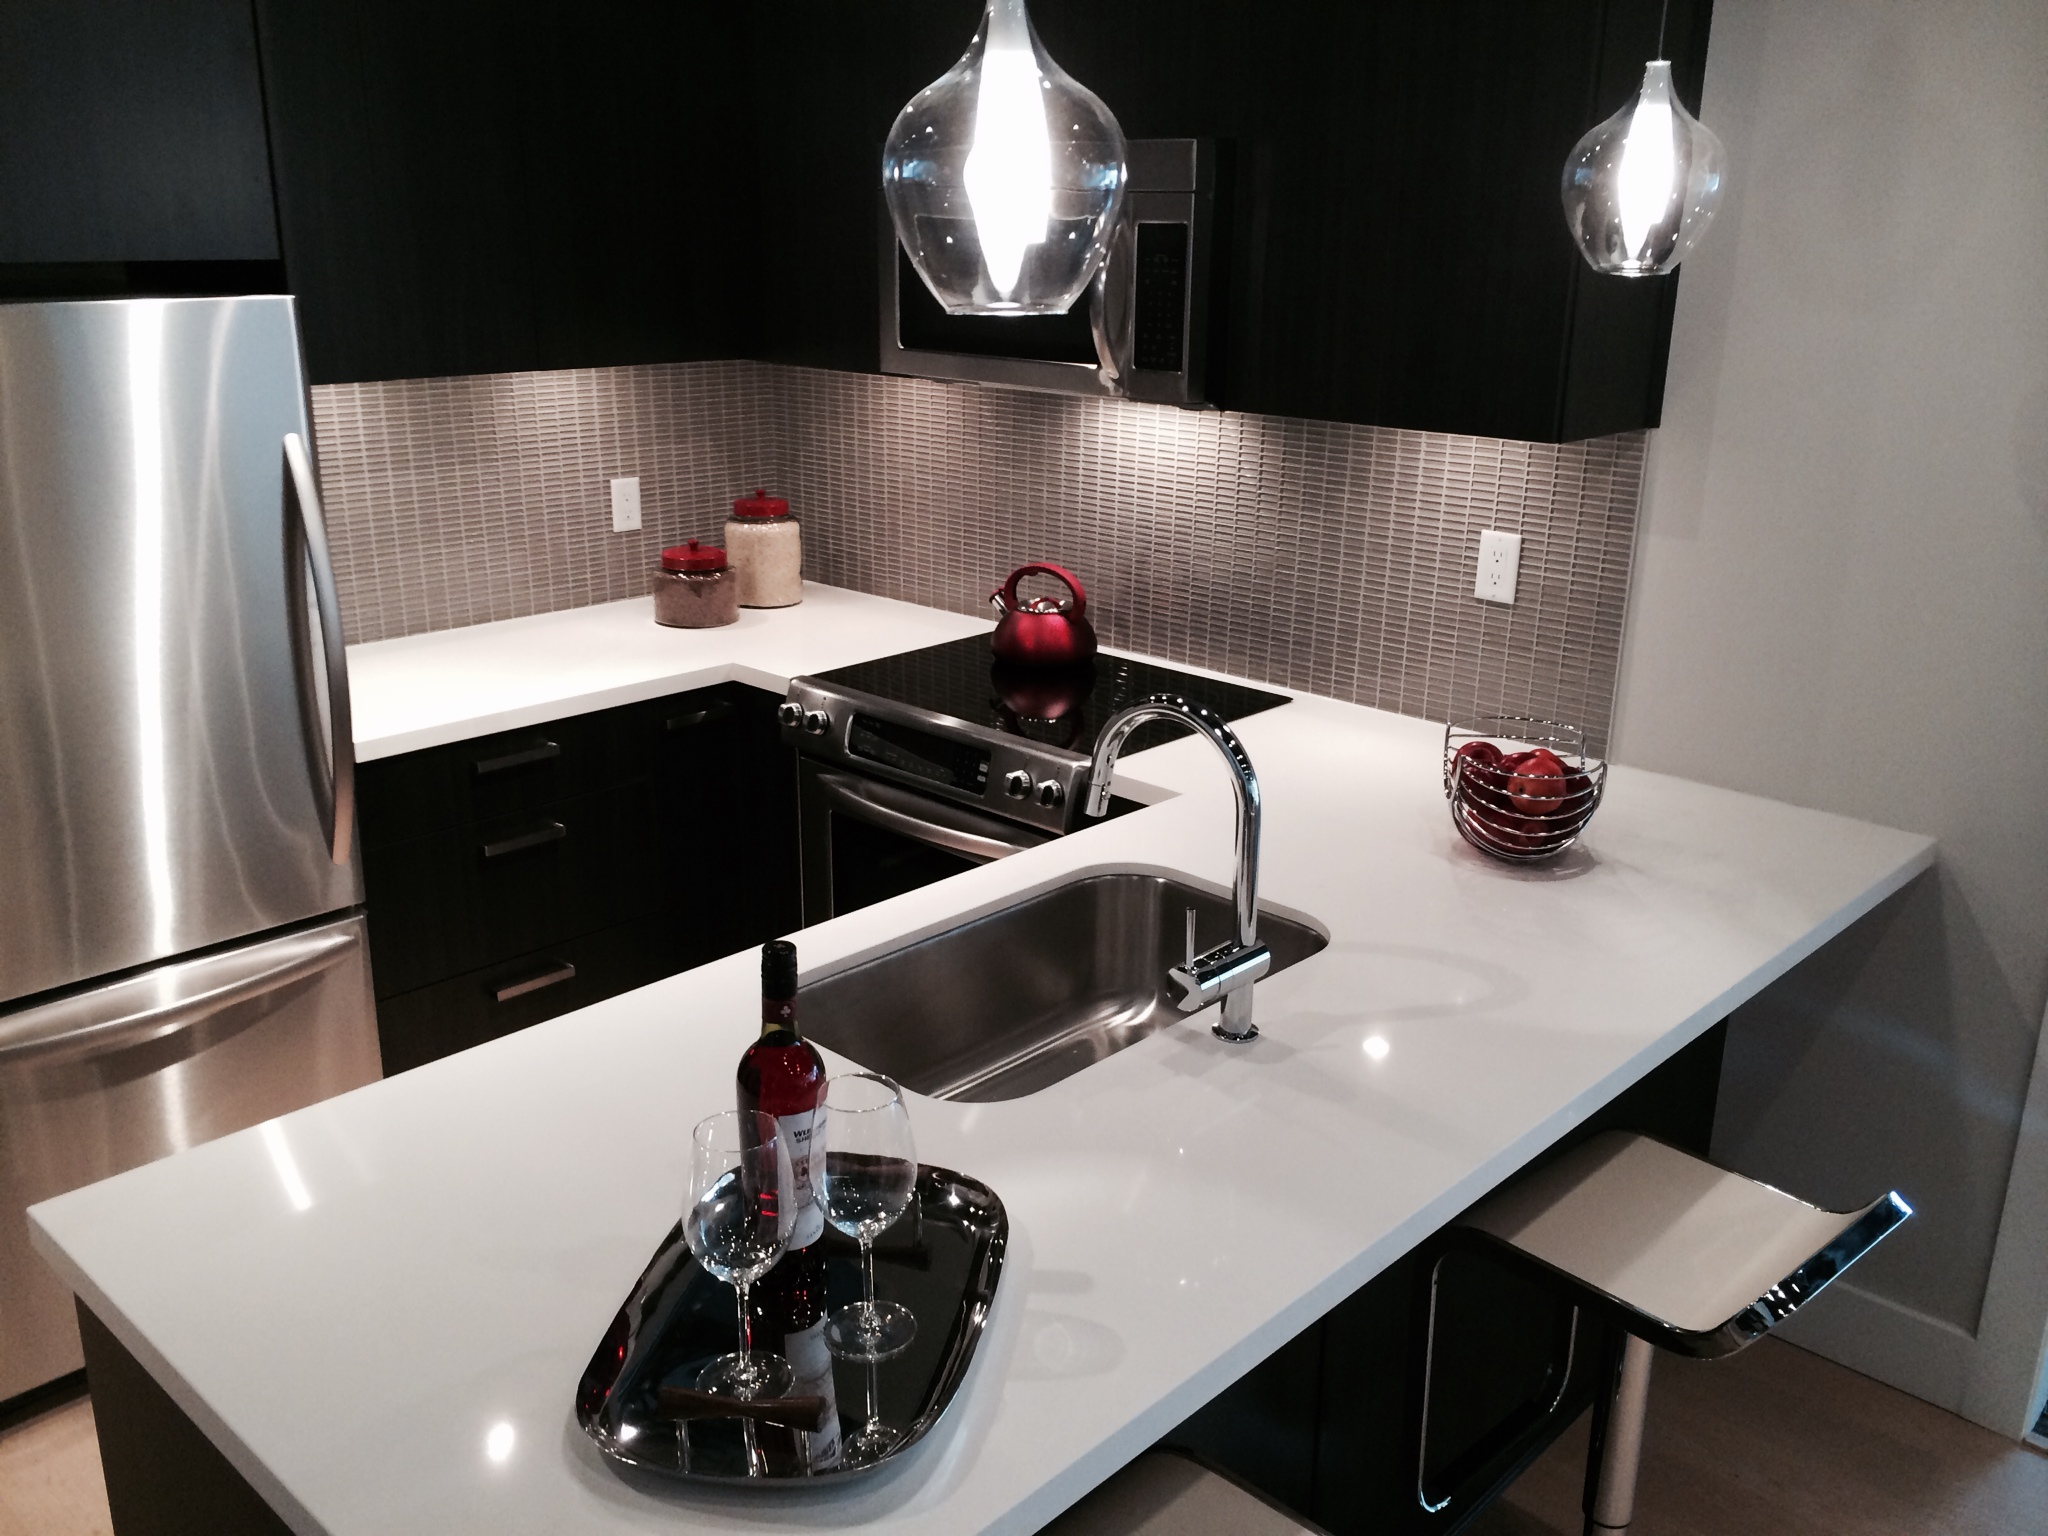 Midtown Vancouver Kitchen at Display Centre